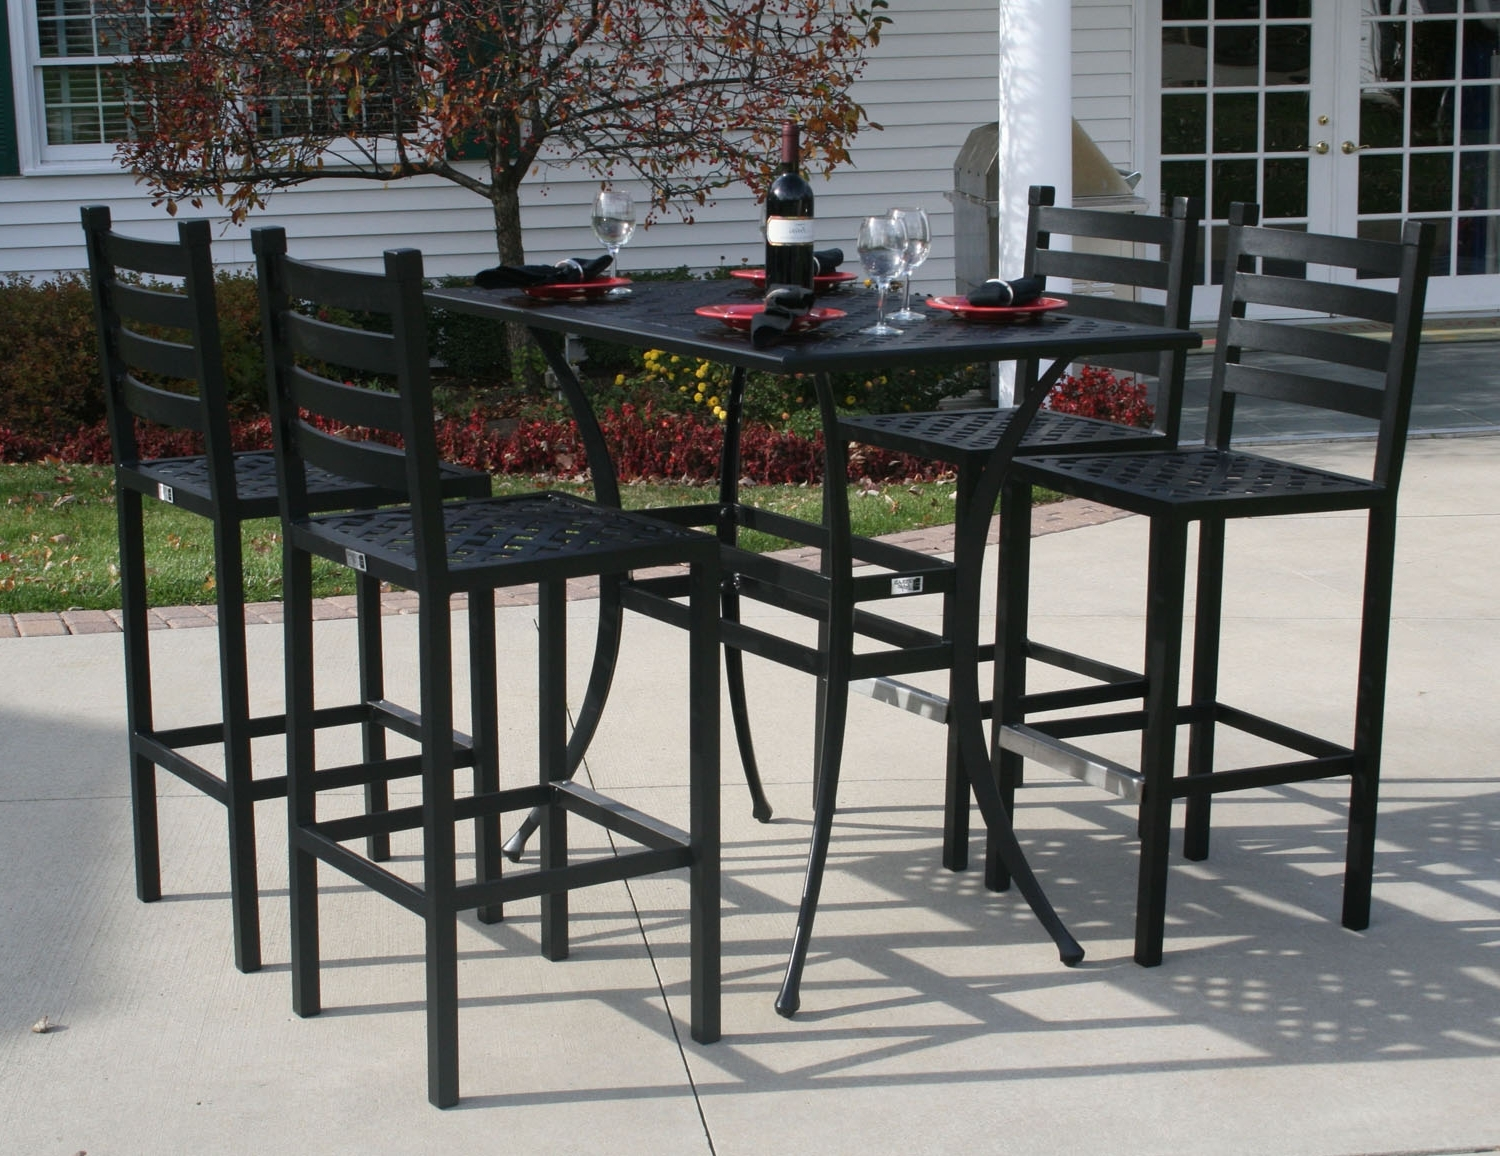 Patio Umbrellas For Bar Height Tables Pertaining To Popular Ansley Luxury 4 Person All Welded Cast Aluminum Patio Furniture Bar (View 16 of 20)